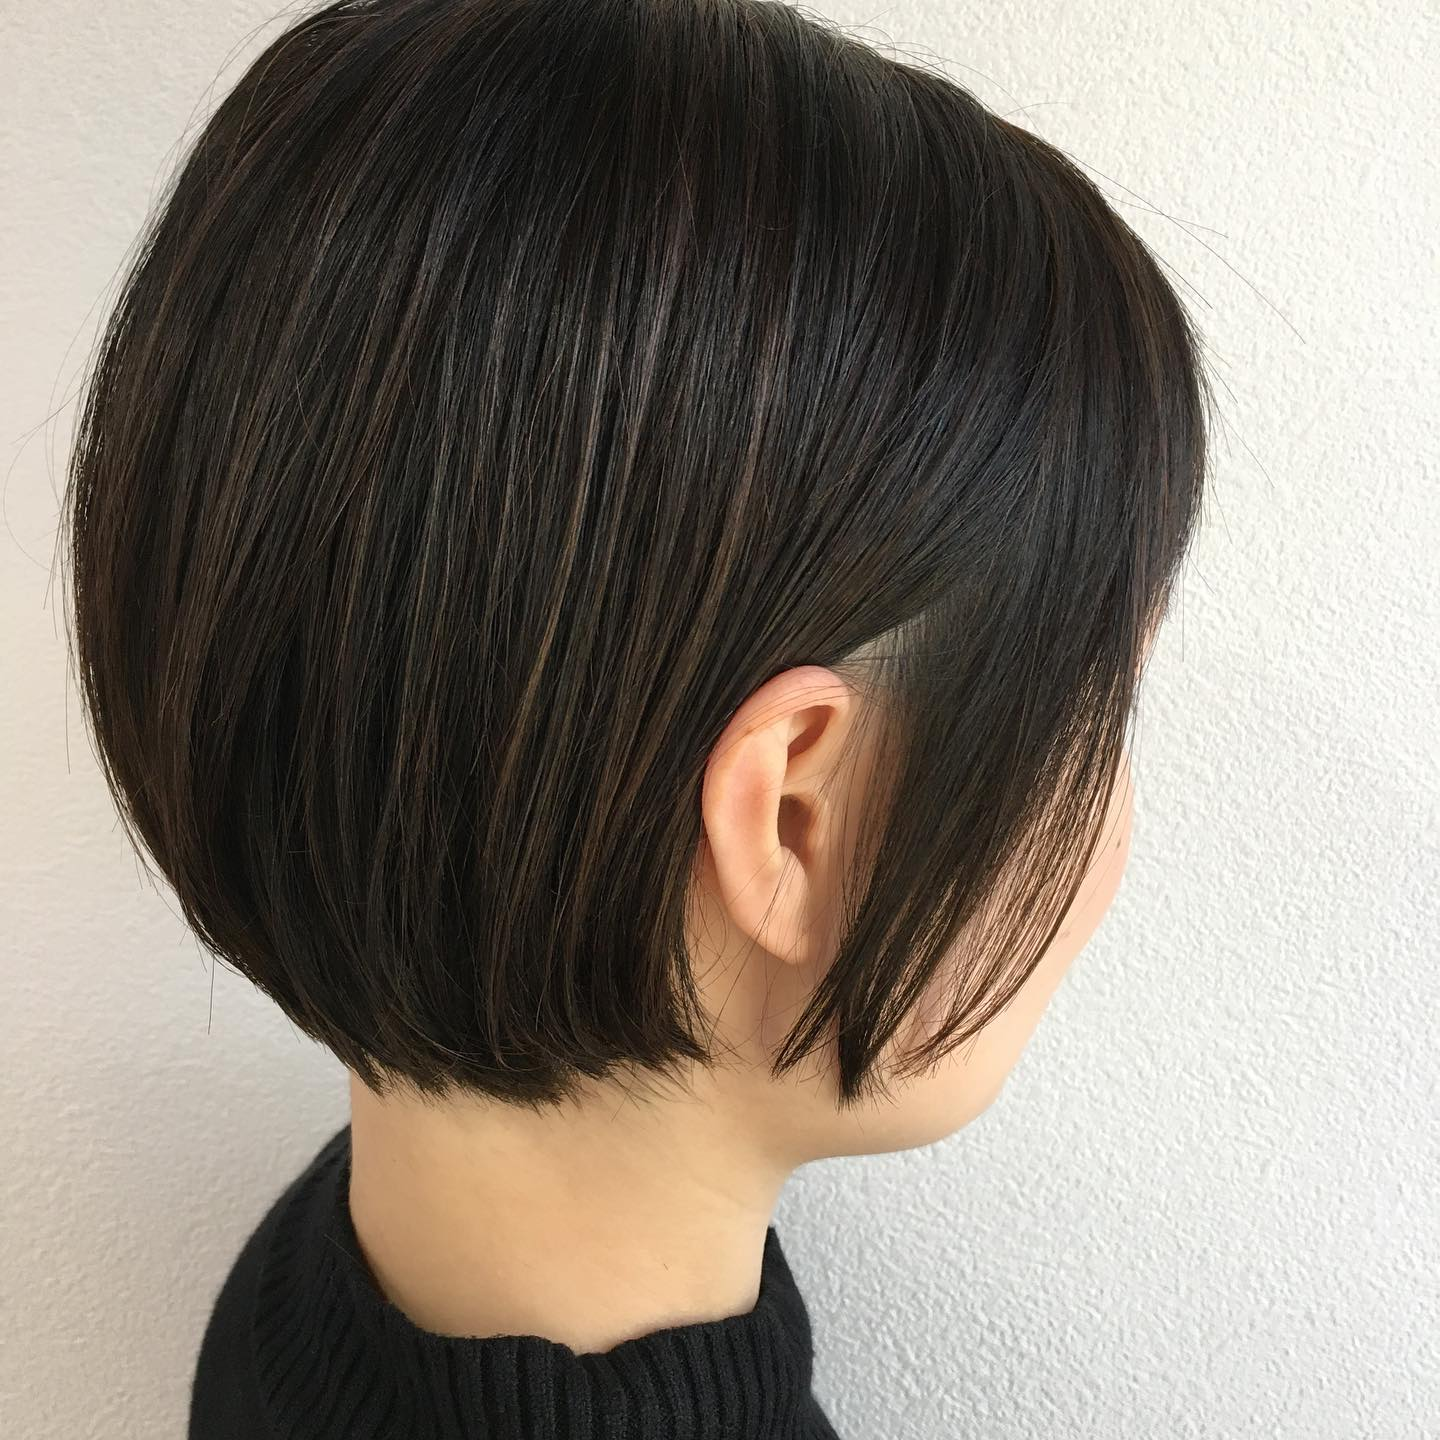 Totti Totti hair design平日  10:00〜20:00lastcut 18:30 other 18:00土日祝  9:00〜19:00lastcut 18:00 other 17:00close  wednesdayhttp://www.totti-hd.com#ハイライトで全体明るく#褪色も楽しみ#安定の可愛さ#N家様からの頂きもの#めちゃうまでした#totti #hair #color #perm #cut #hairstyle #haircolor #hairarrange #stylist #care #carelist #aujua #イルミナカラー #headspa #treatment #美容院#着付け